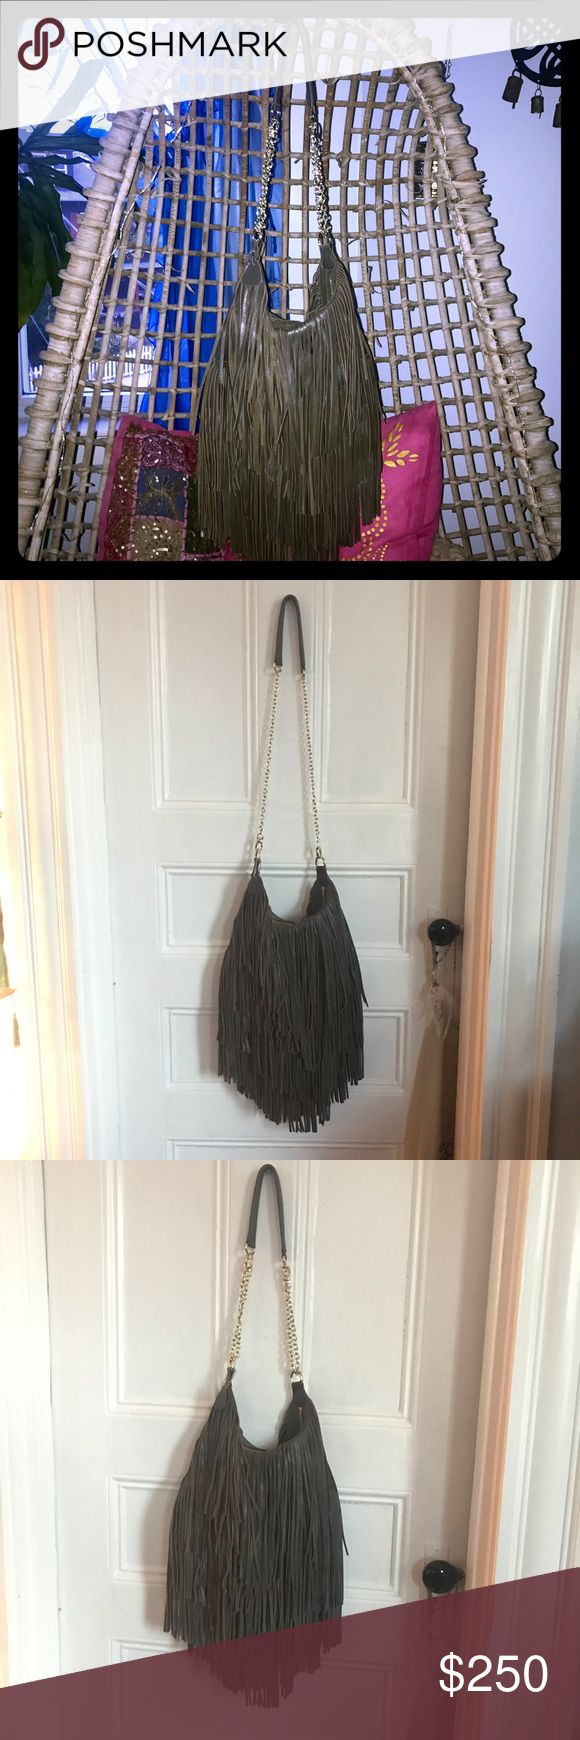 """Amazing NWOT hobo fringe bag Bohemian-perfect bag. This is my friend's 100% leather hobo bag and she has never used it.  Immaculate inside and out (inside flipped out to show).  A+ festival fringes with no crumpling.  Awesome olive green/grey goes with everything. Approx 14""""x14"""" with a 39"""" adjustable or removable/changeable strap. Wear crossbody or nah. Pic #7 shows short, #8 shows long. Purchased at Lost and Found boutique in Hollywood for over $900. Anthropologie sold the same bag called…"""